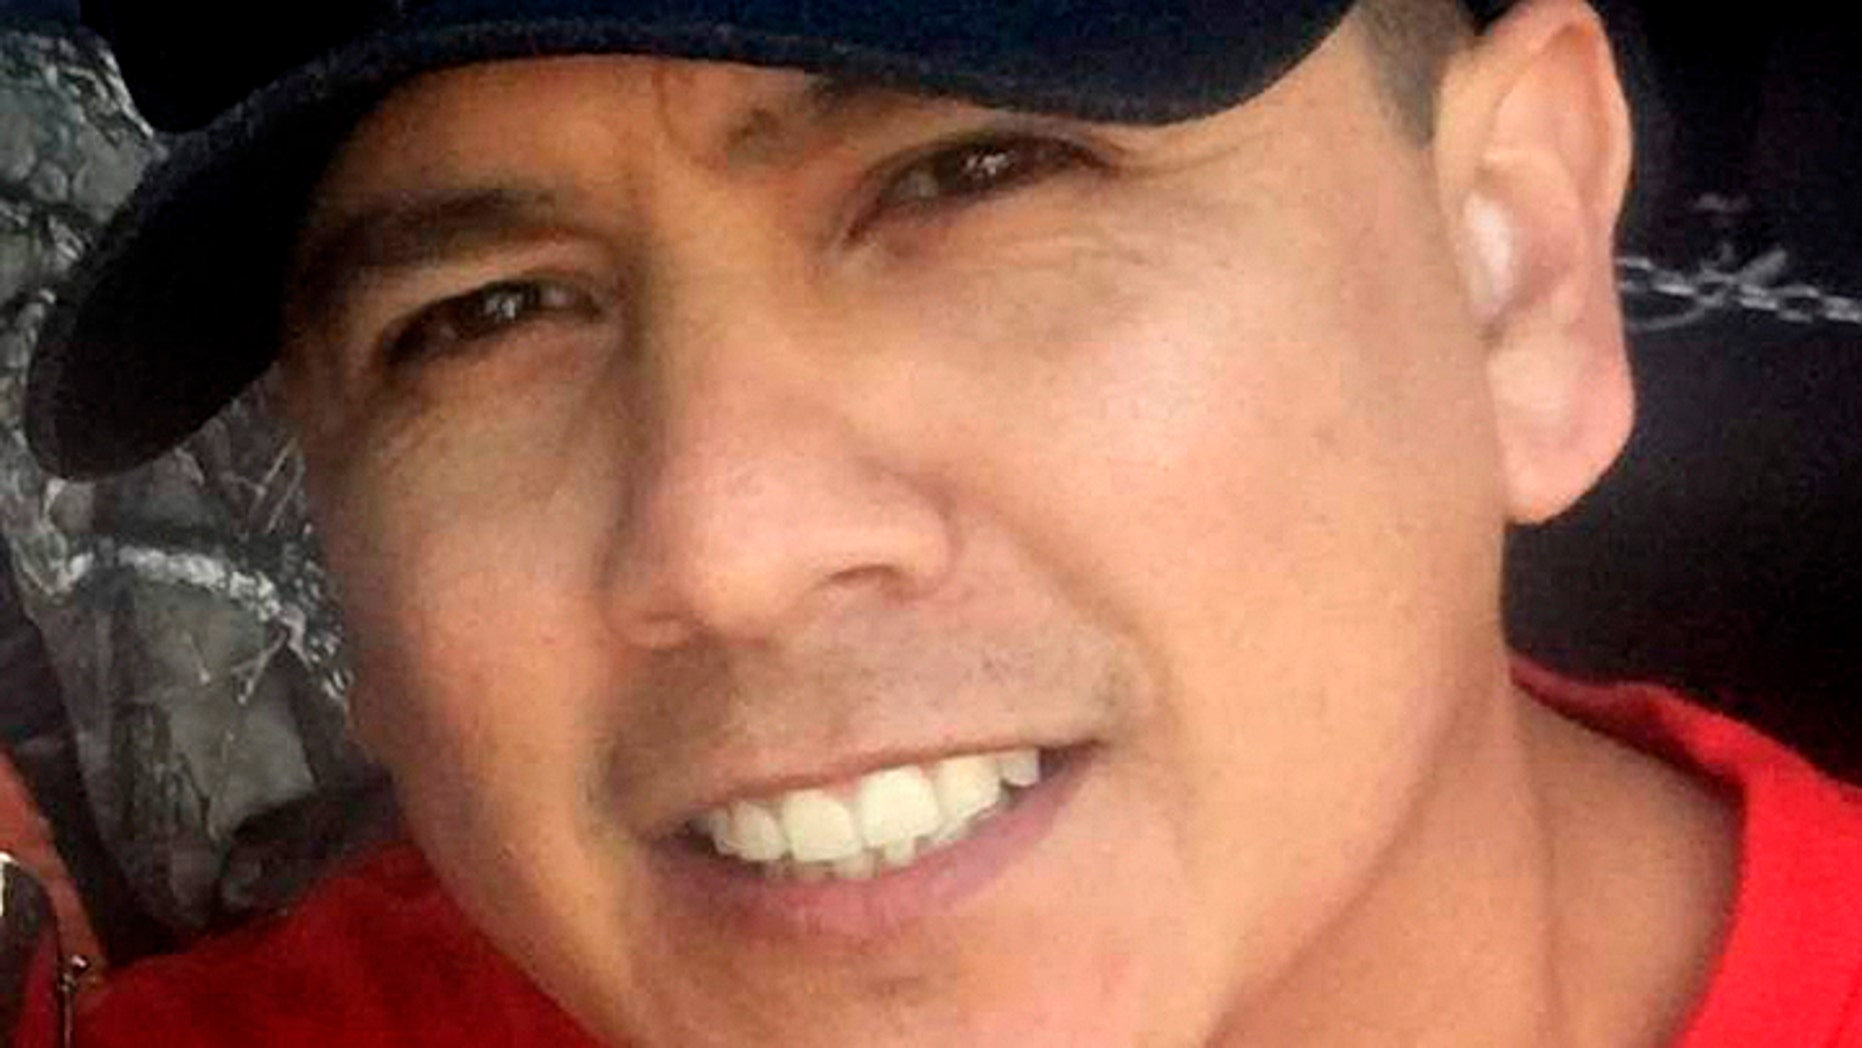 Rogelio Martinez, 36, was killed while patrolling the Big Bend Sector in Texas.